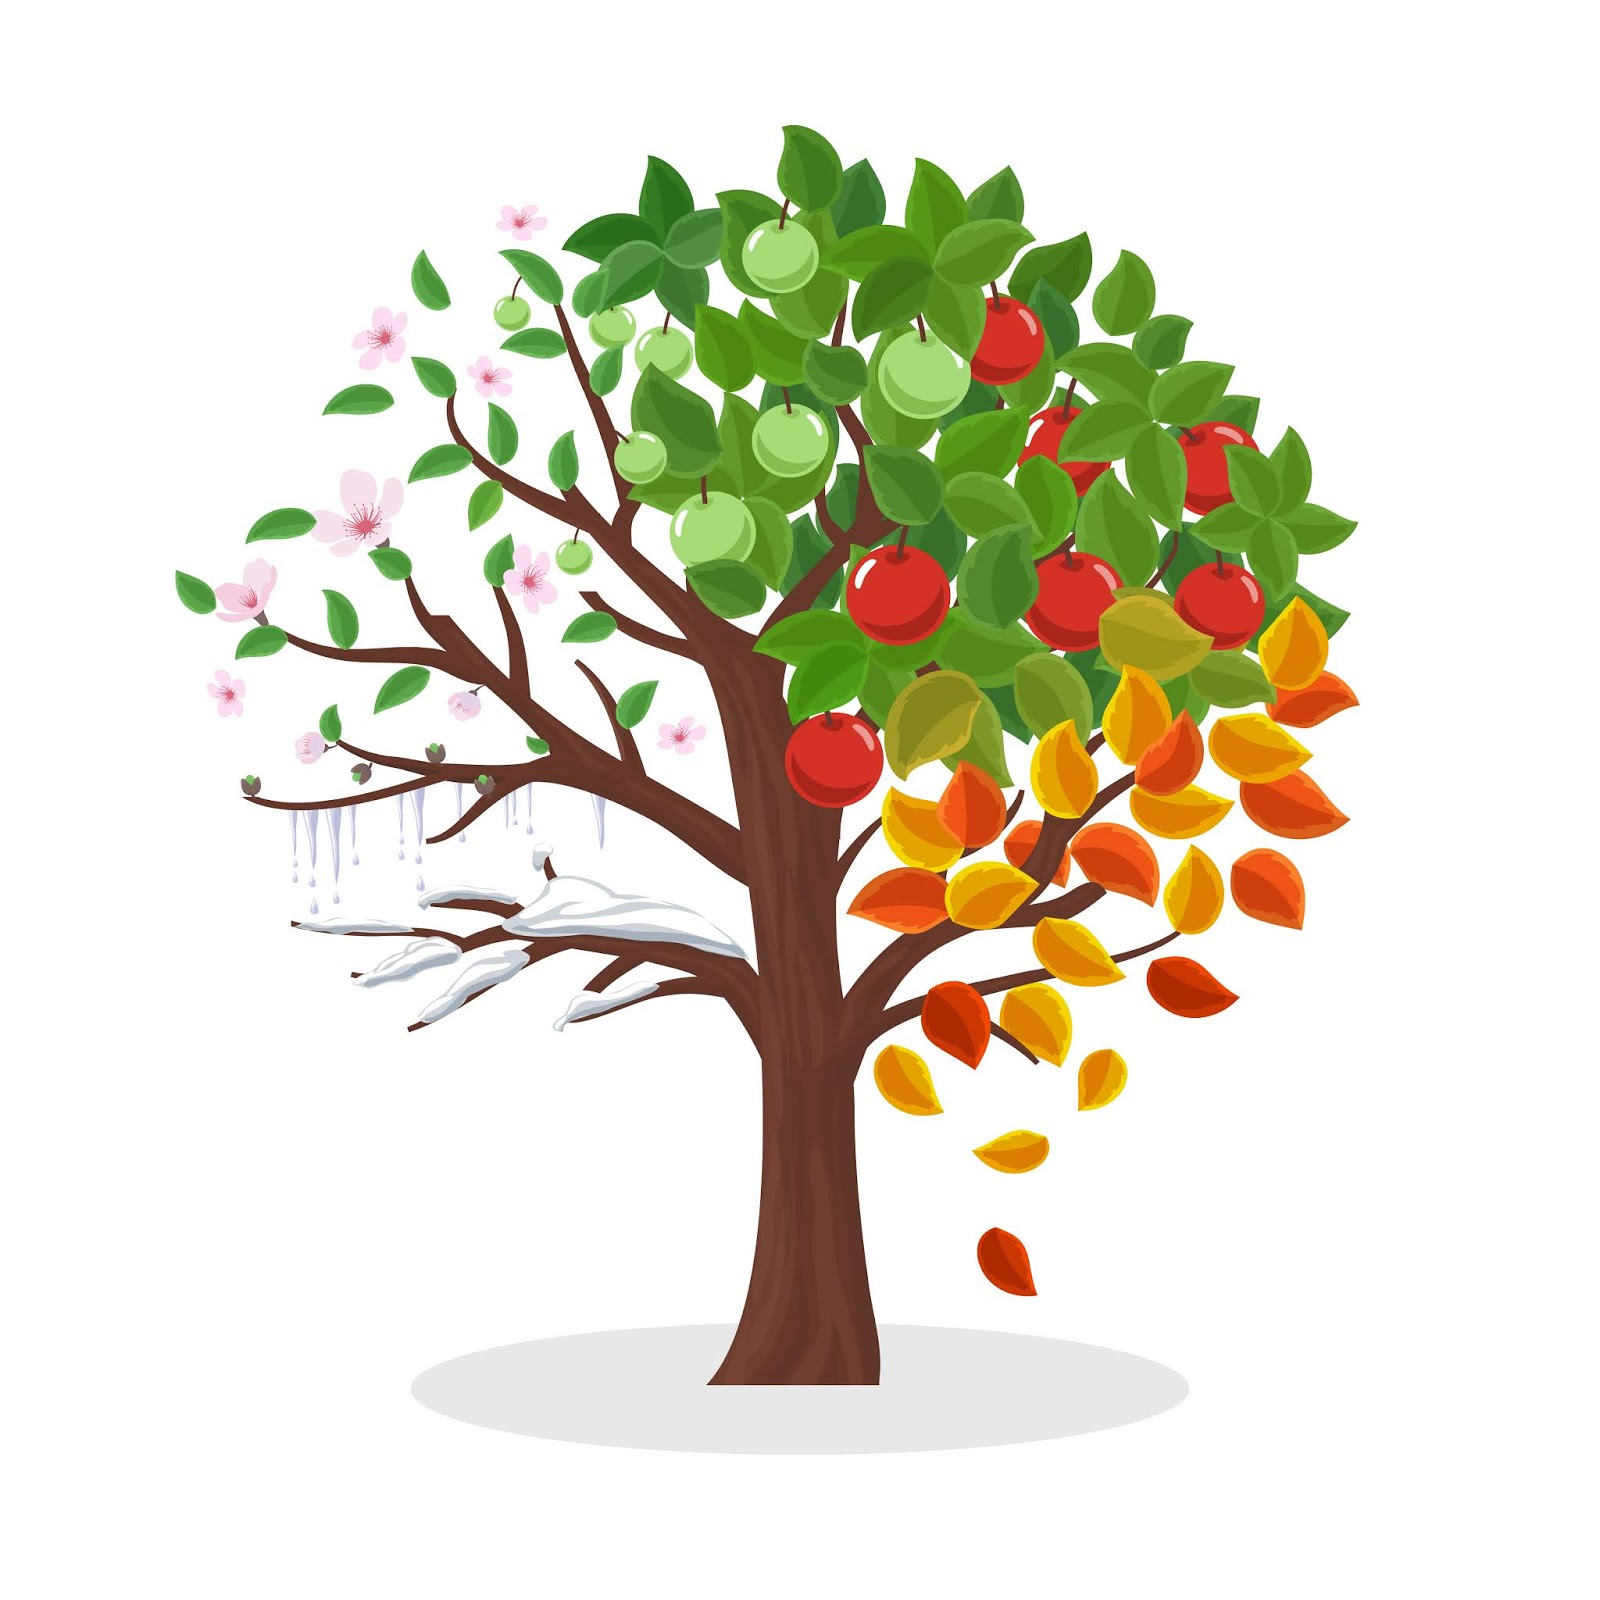 Seasons Tree Spring Summer Autumn Free Download Vector CDR, AI, EPS and PNG Formats